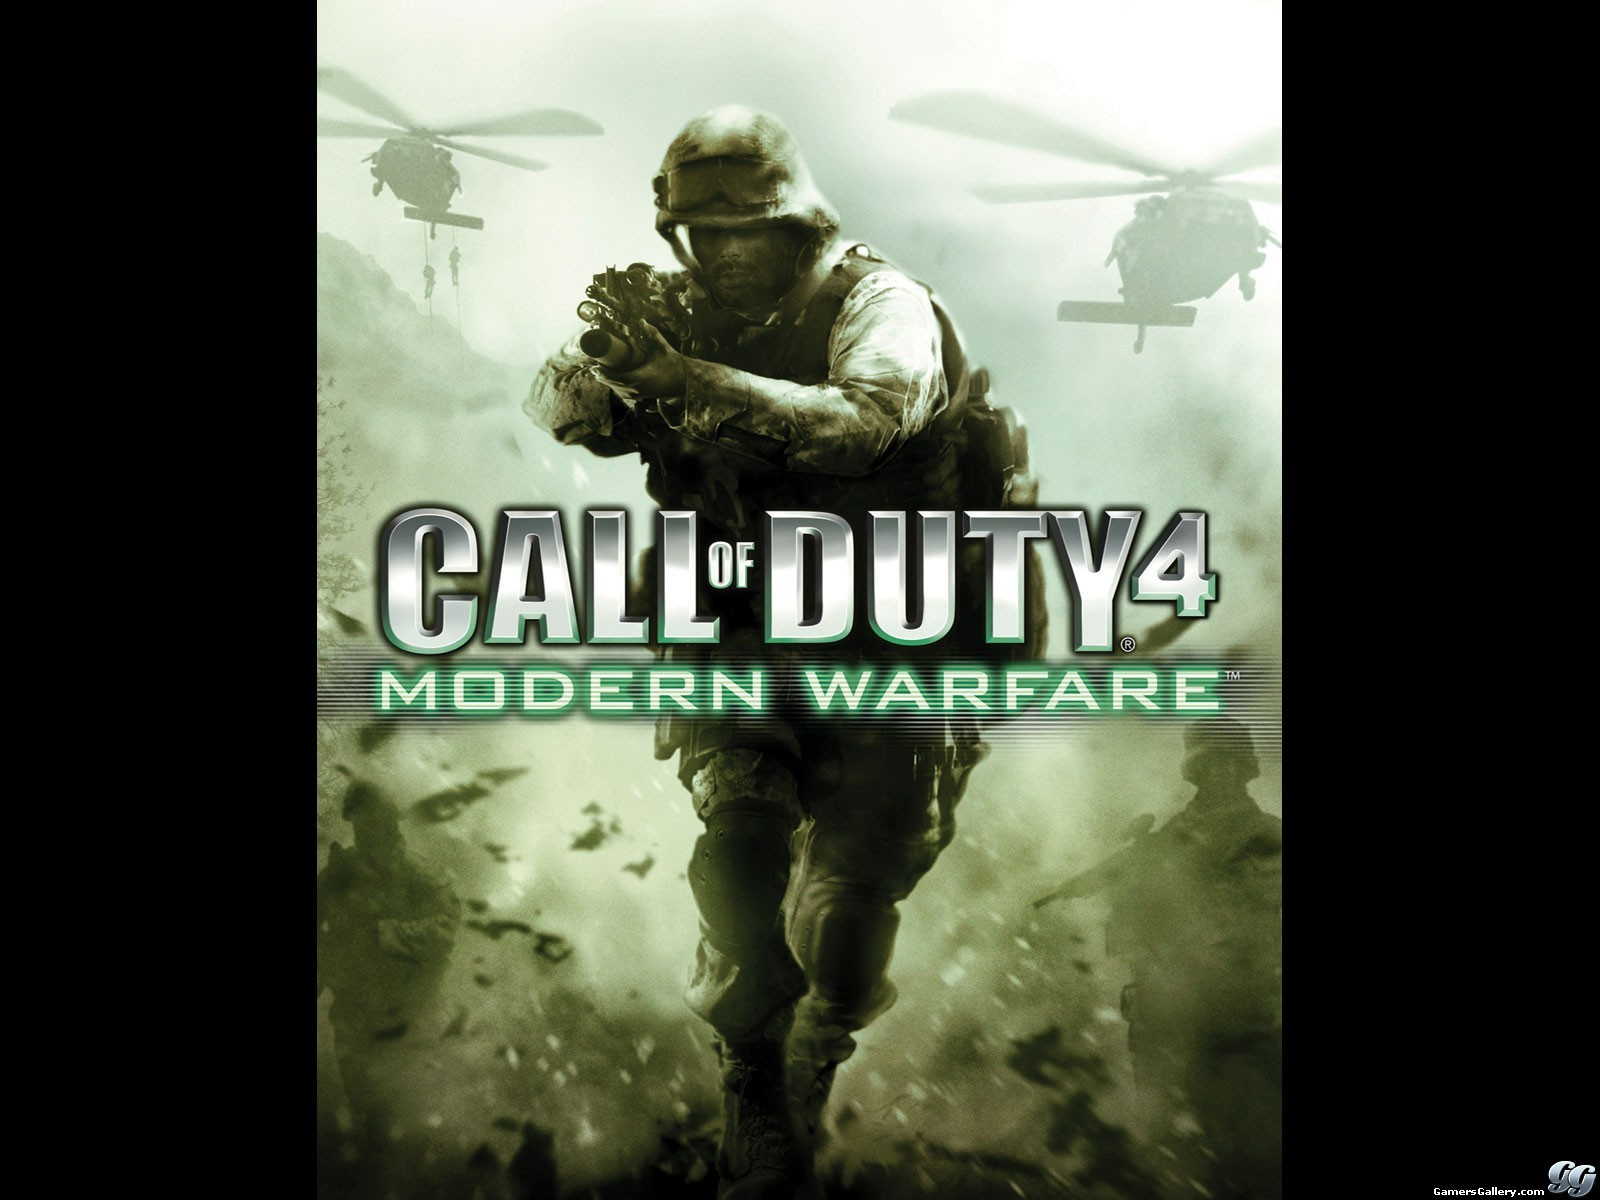 Call of Duty 4 Modern Warfare Free Key Giveaway.